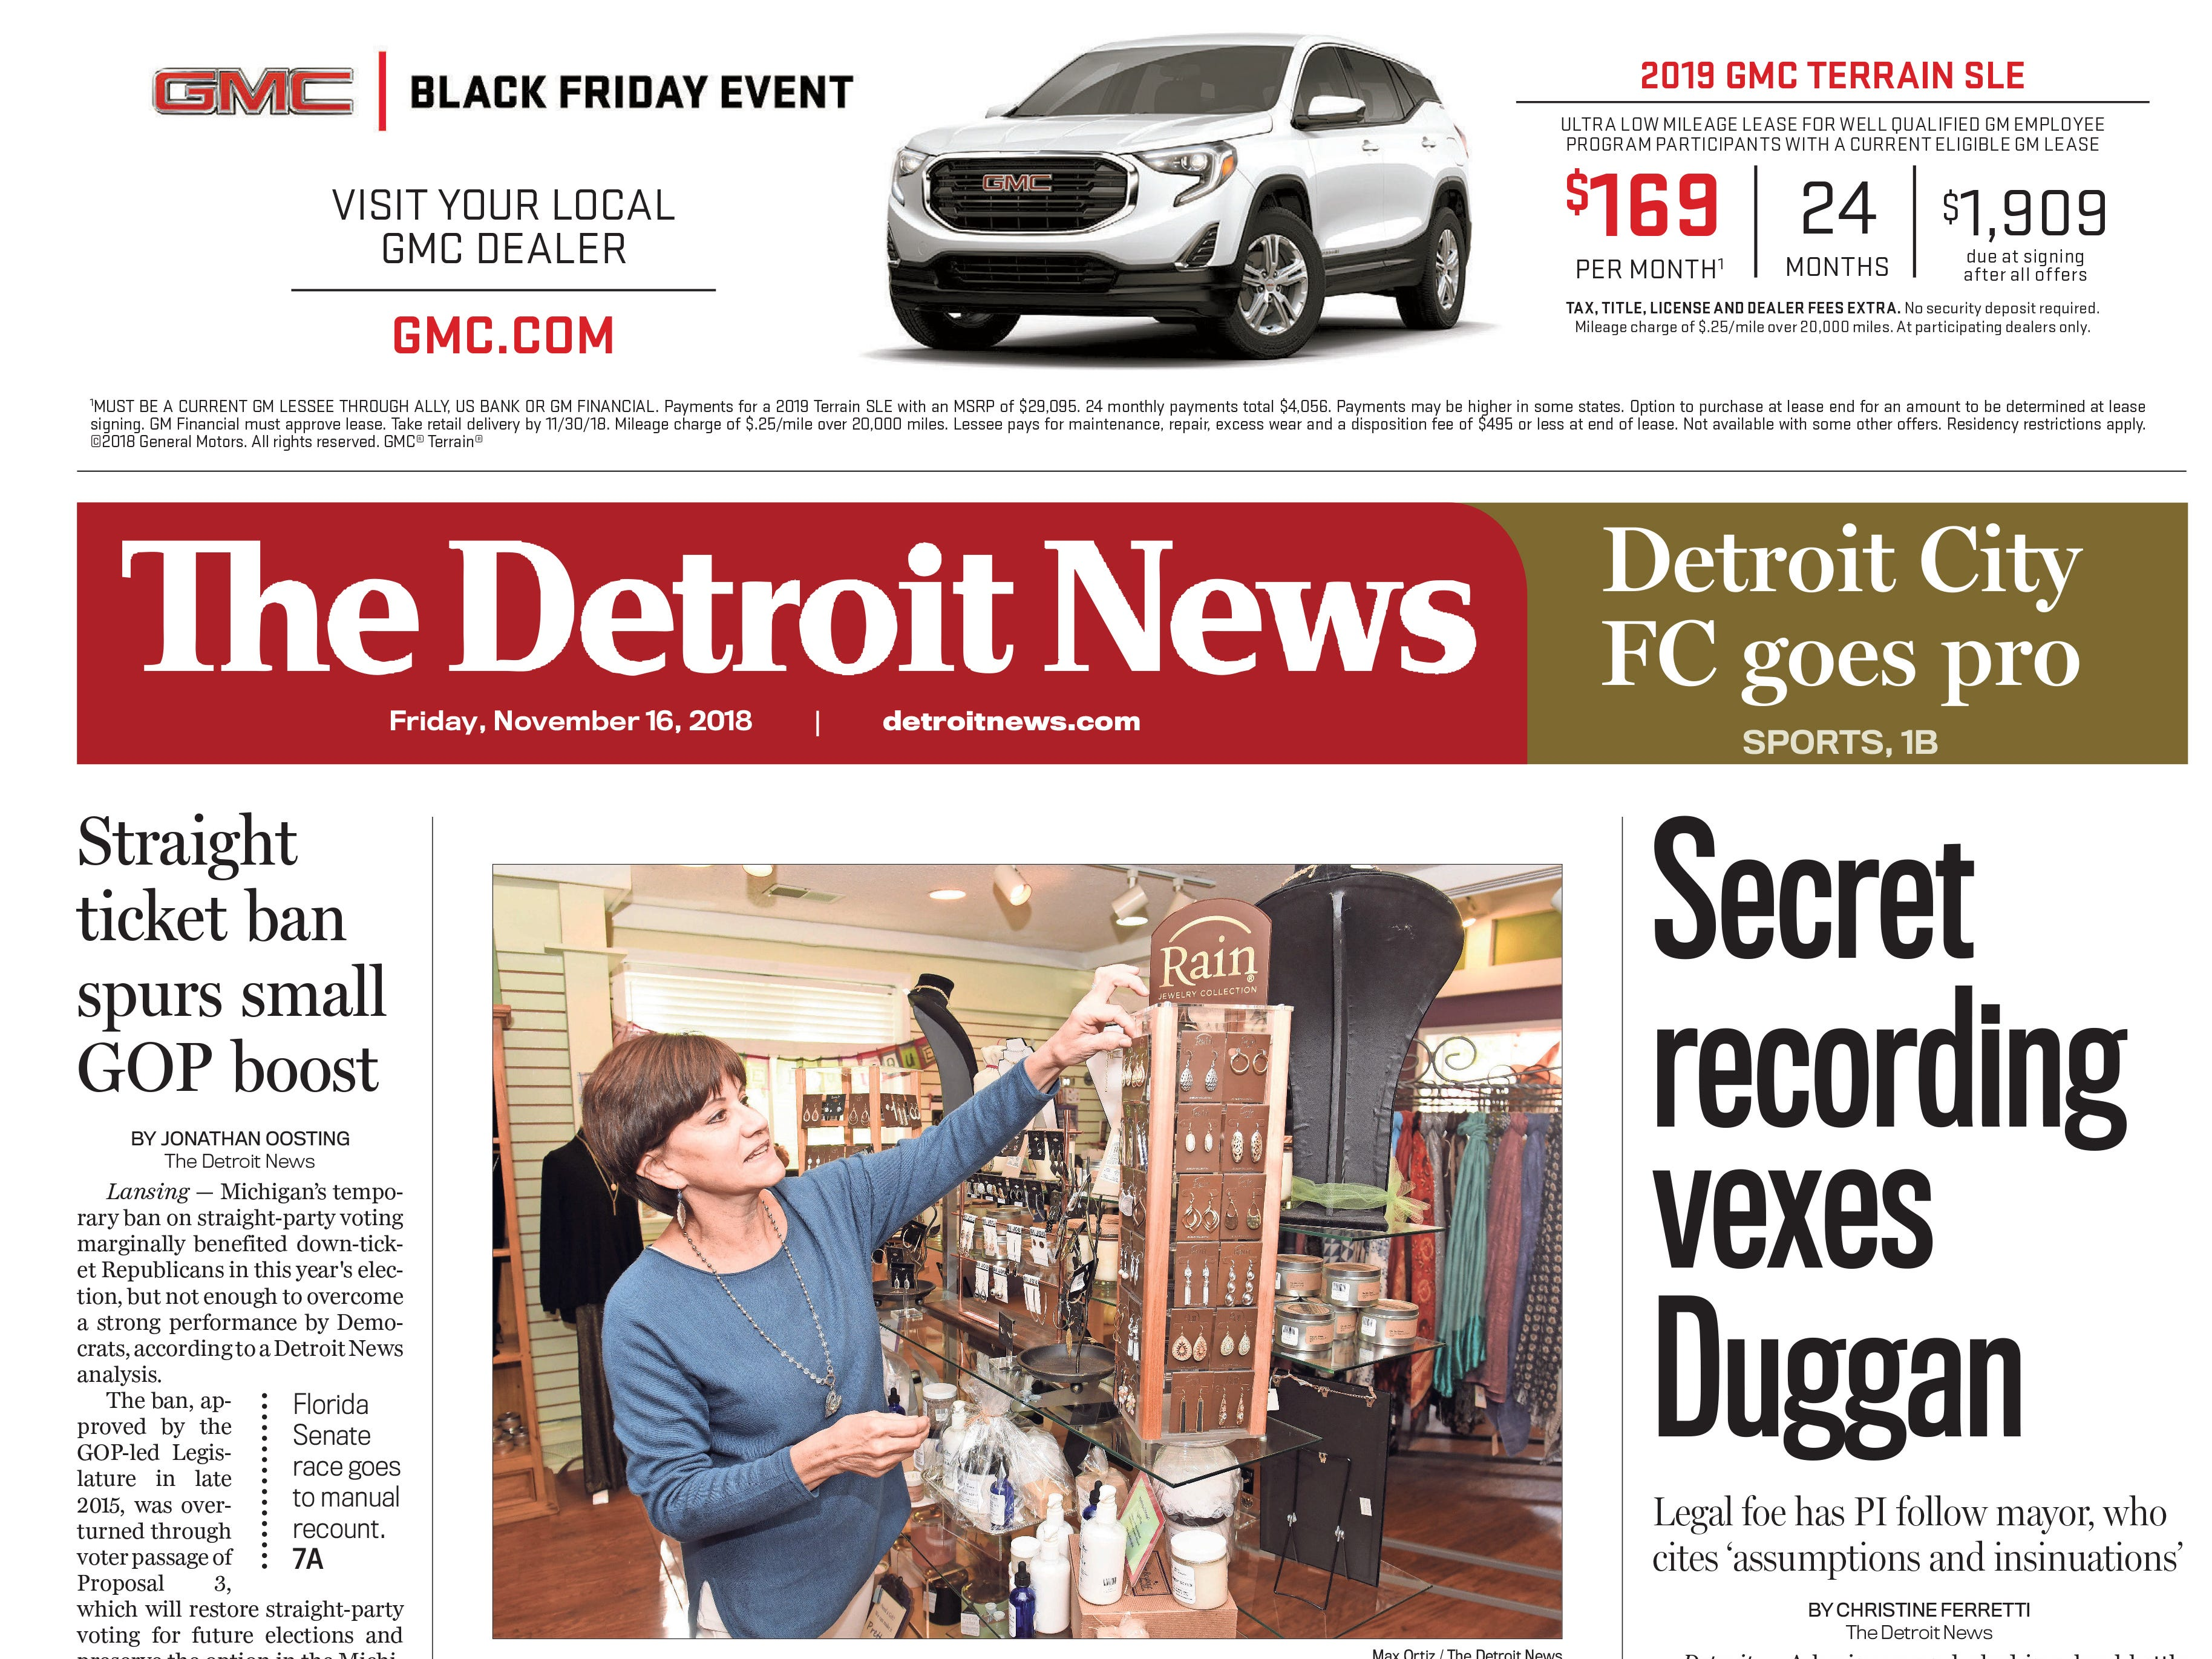 The front page of the Detroit News on Friday, November 16, 2008.